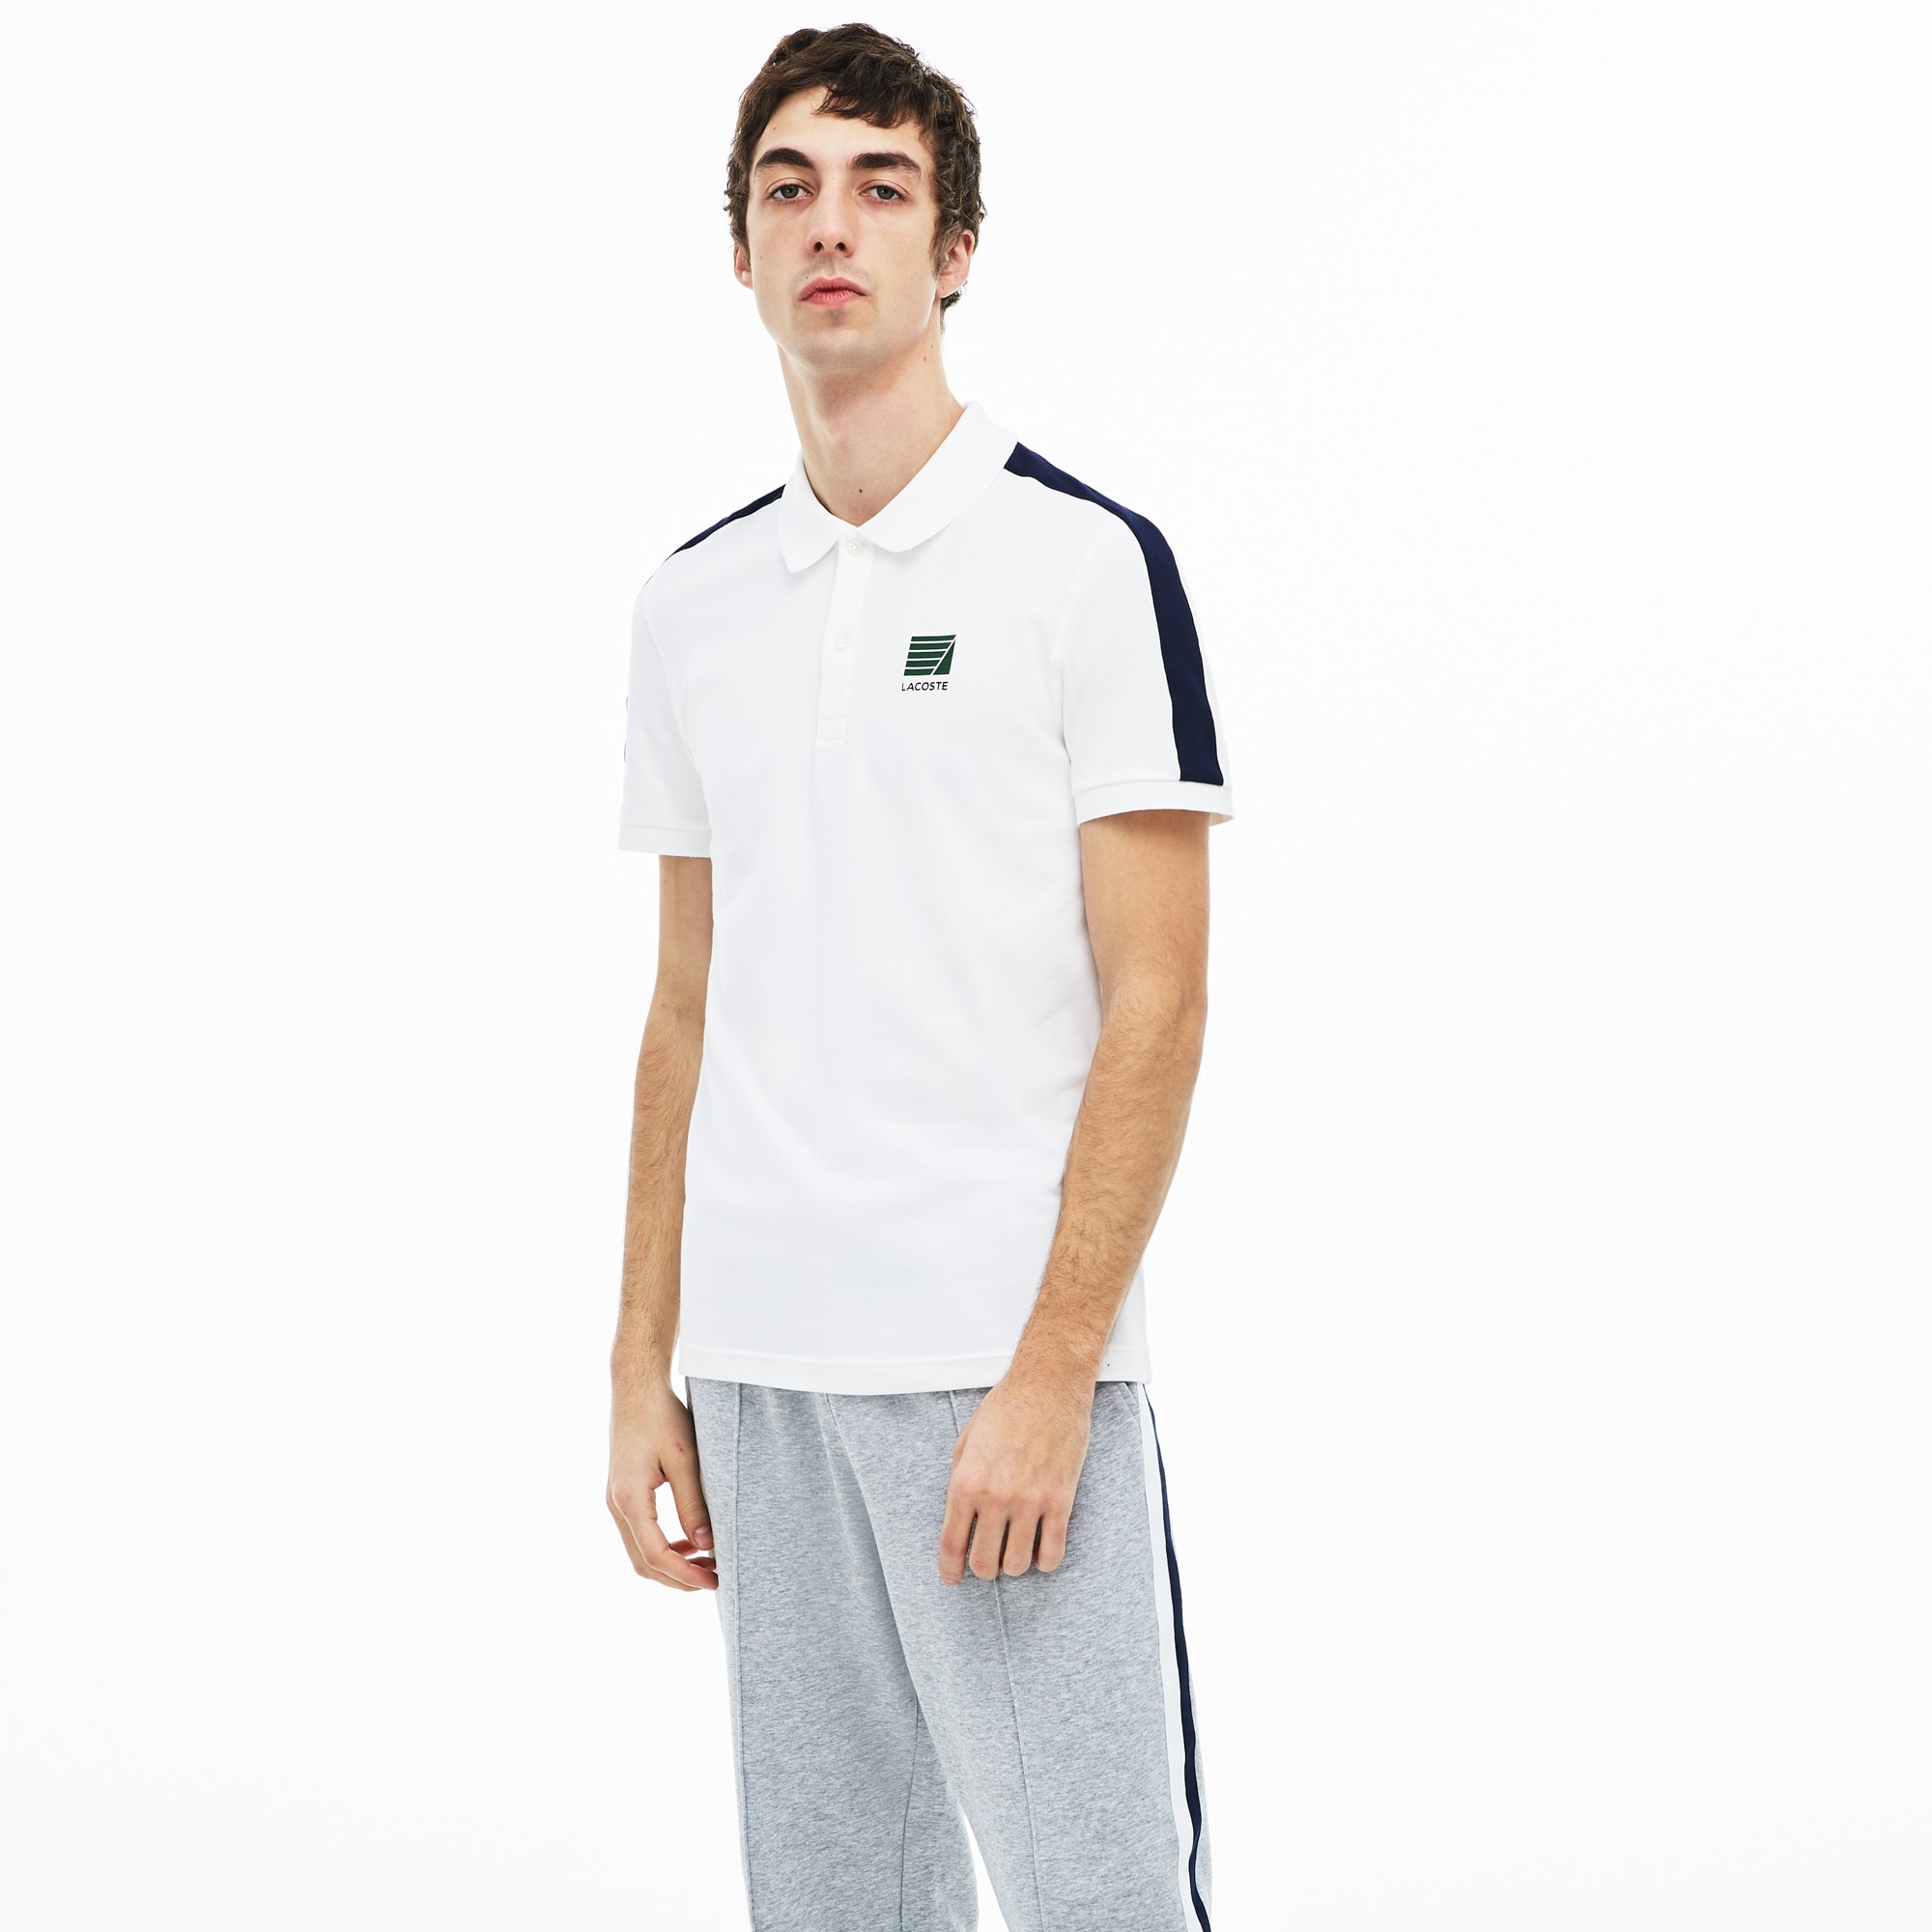 3a770d6a33b6 Men's Slim Fit Stretch Cotton Mini Piqué Polo Shirt | LACOSTE